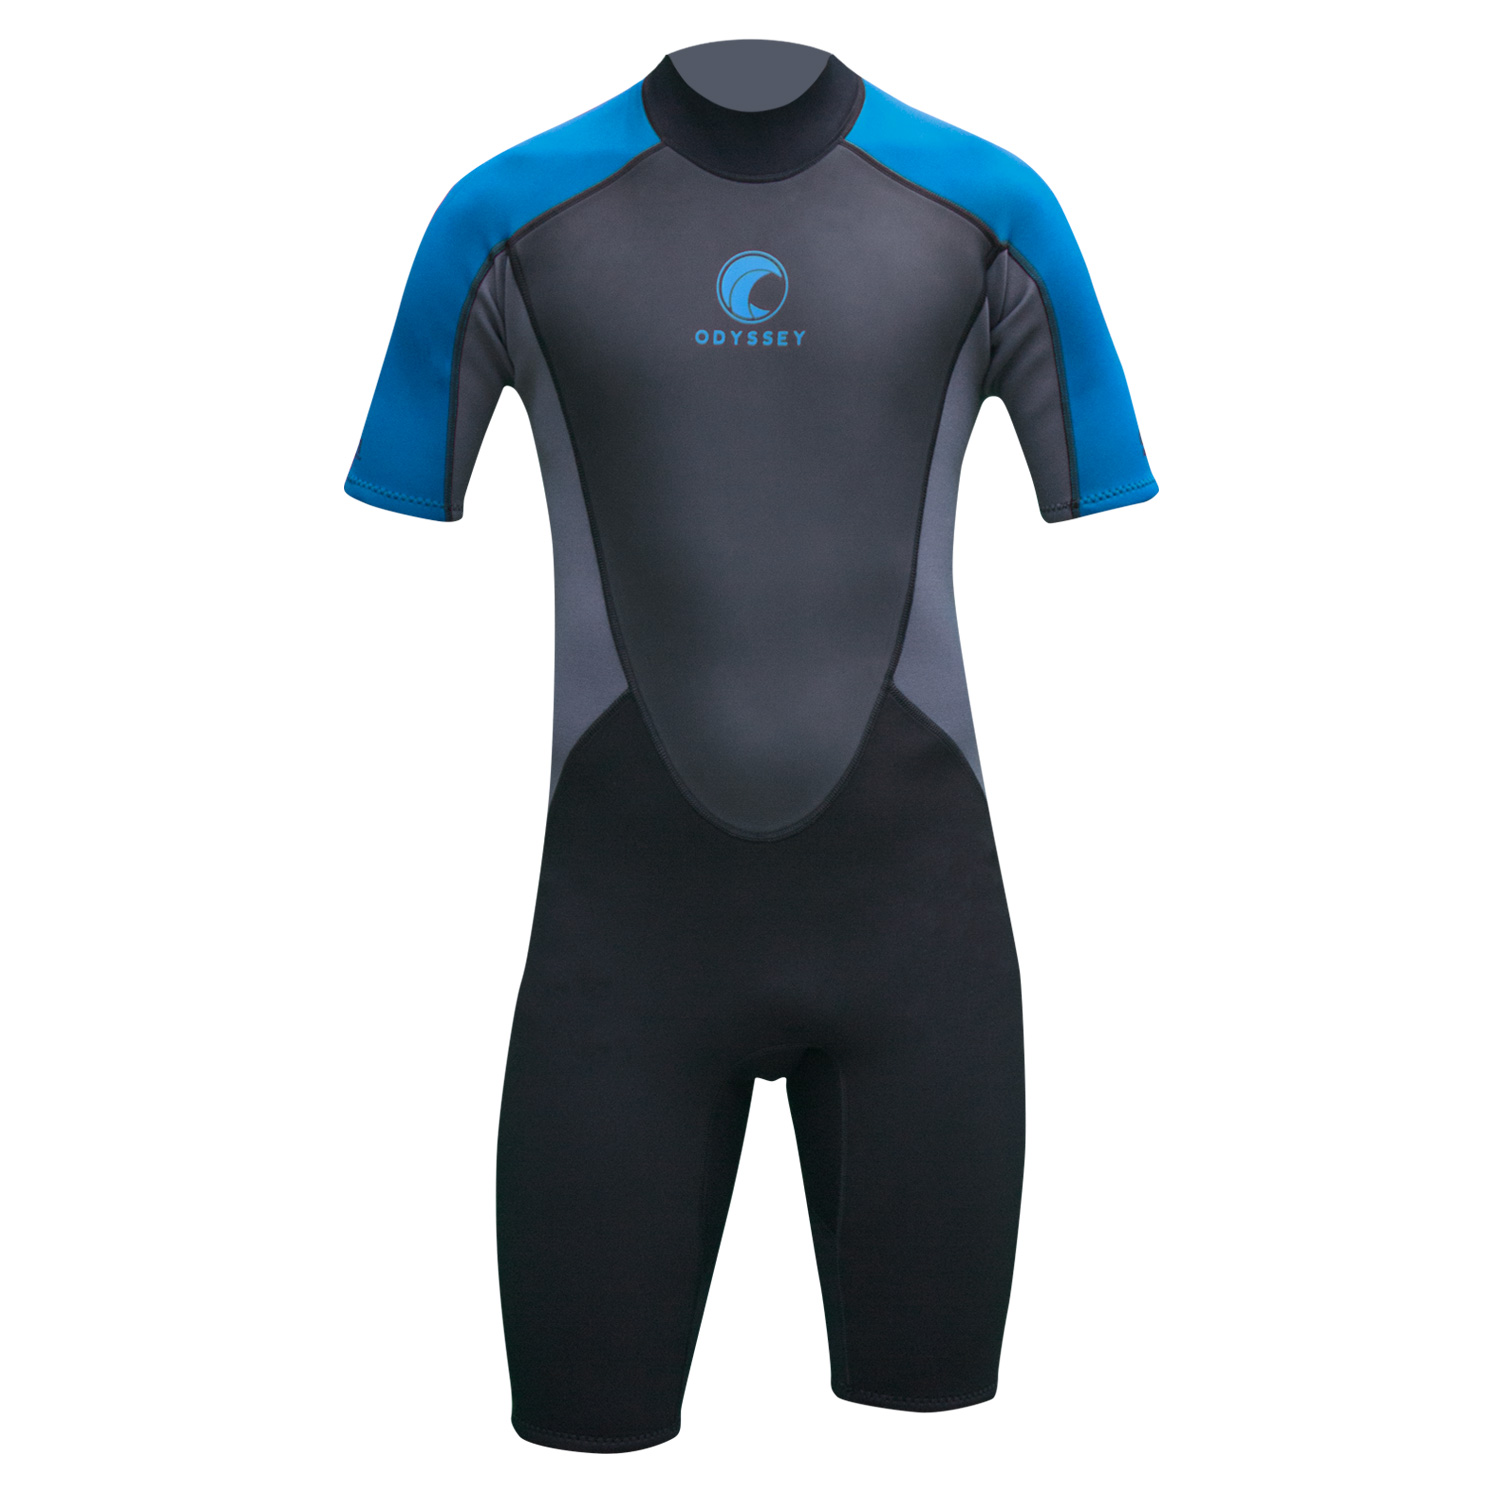 Odyssey-Core-3-2mm-Mens-Shorty-Wetsuit-Surf-Swim-Kayak-Shortie-Wet-Suit-S-XXL thumbnail 8